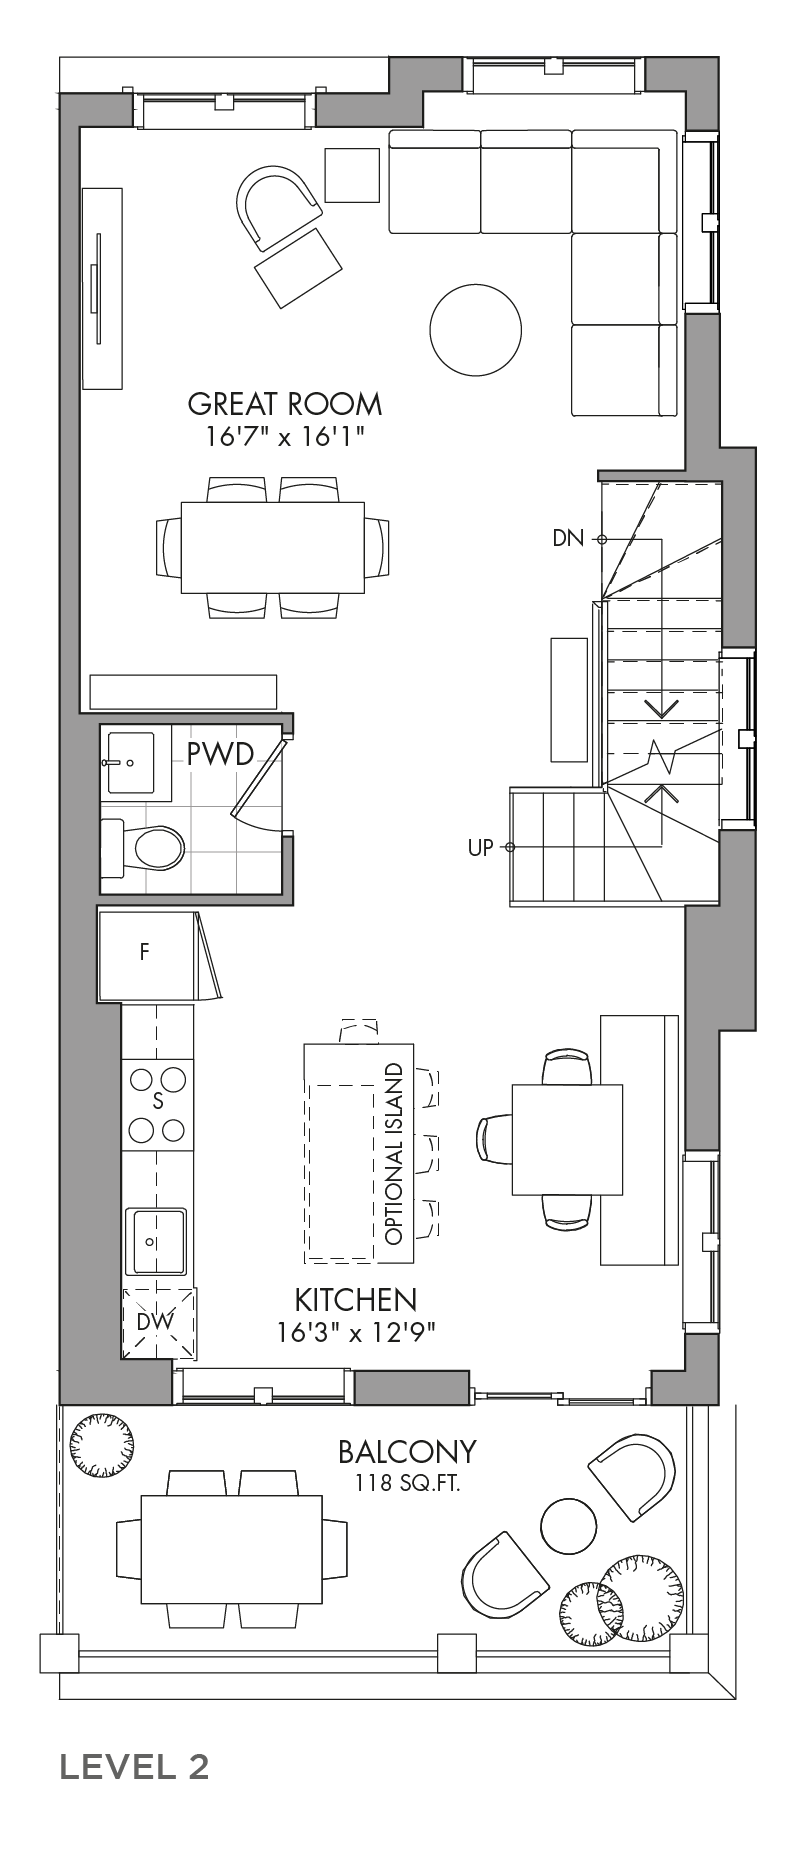 The Mulberrylane, FloorPlan Level2